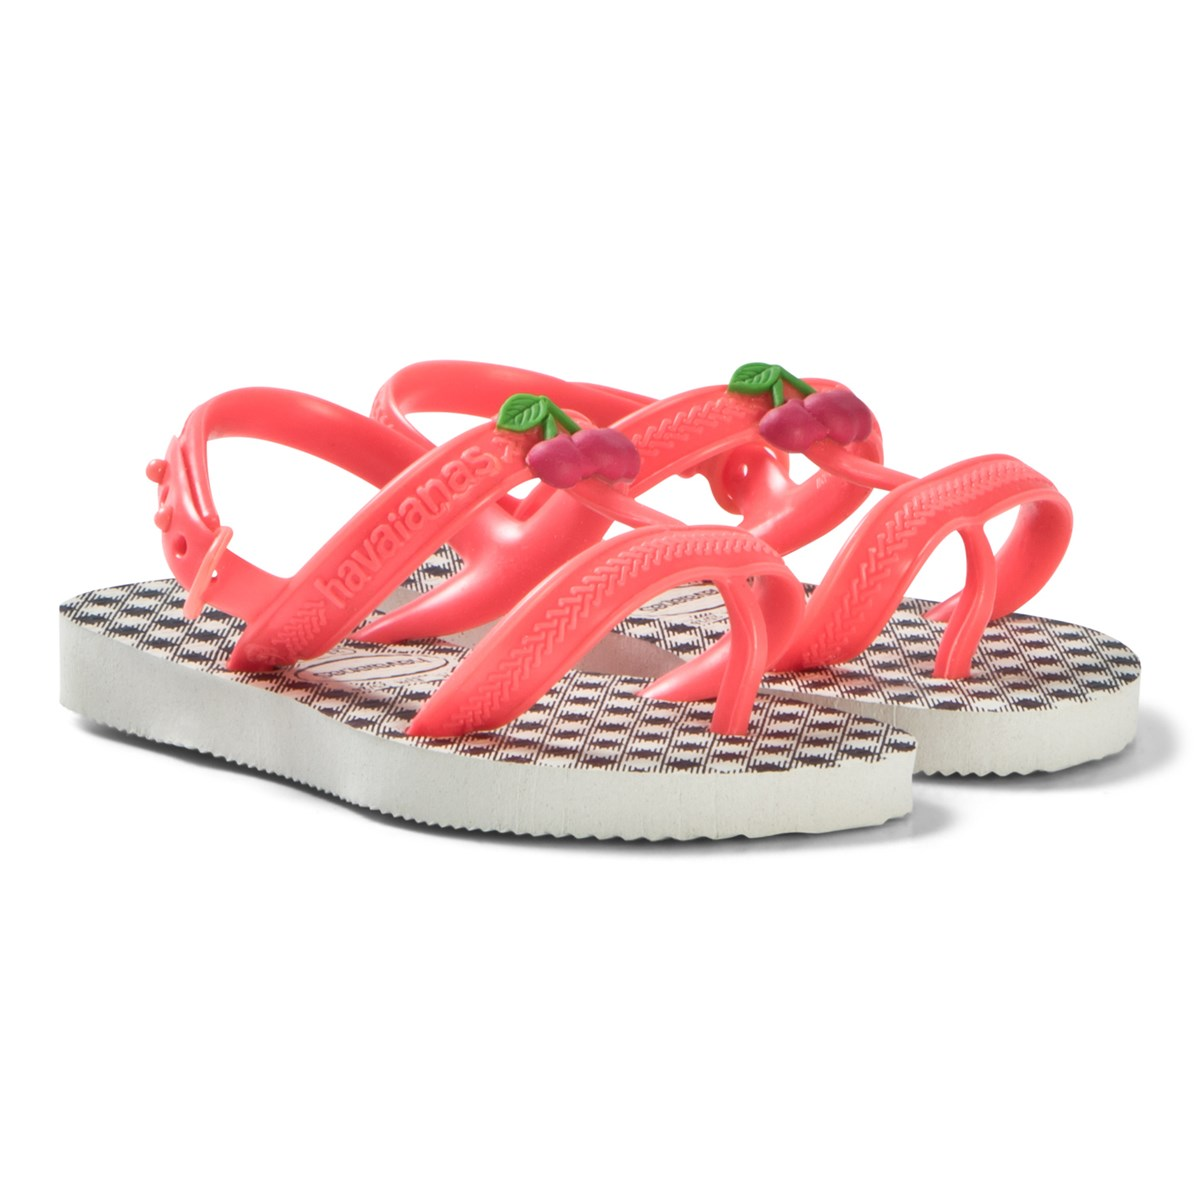 Find every shop in the world selling fitflop sandaler at